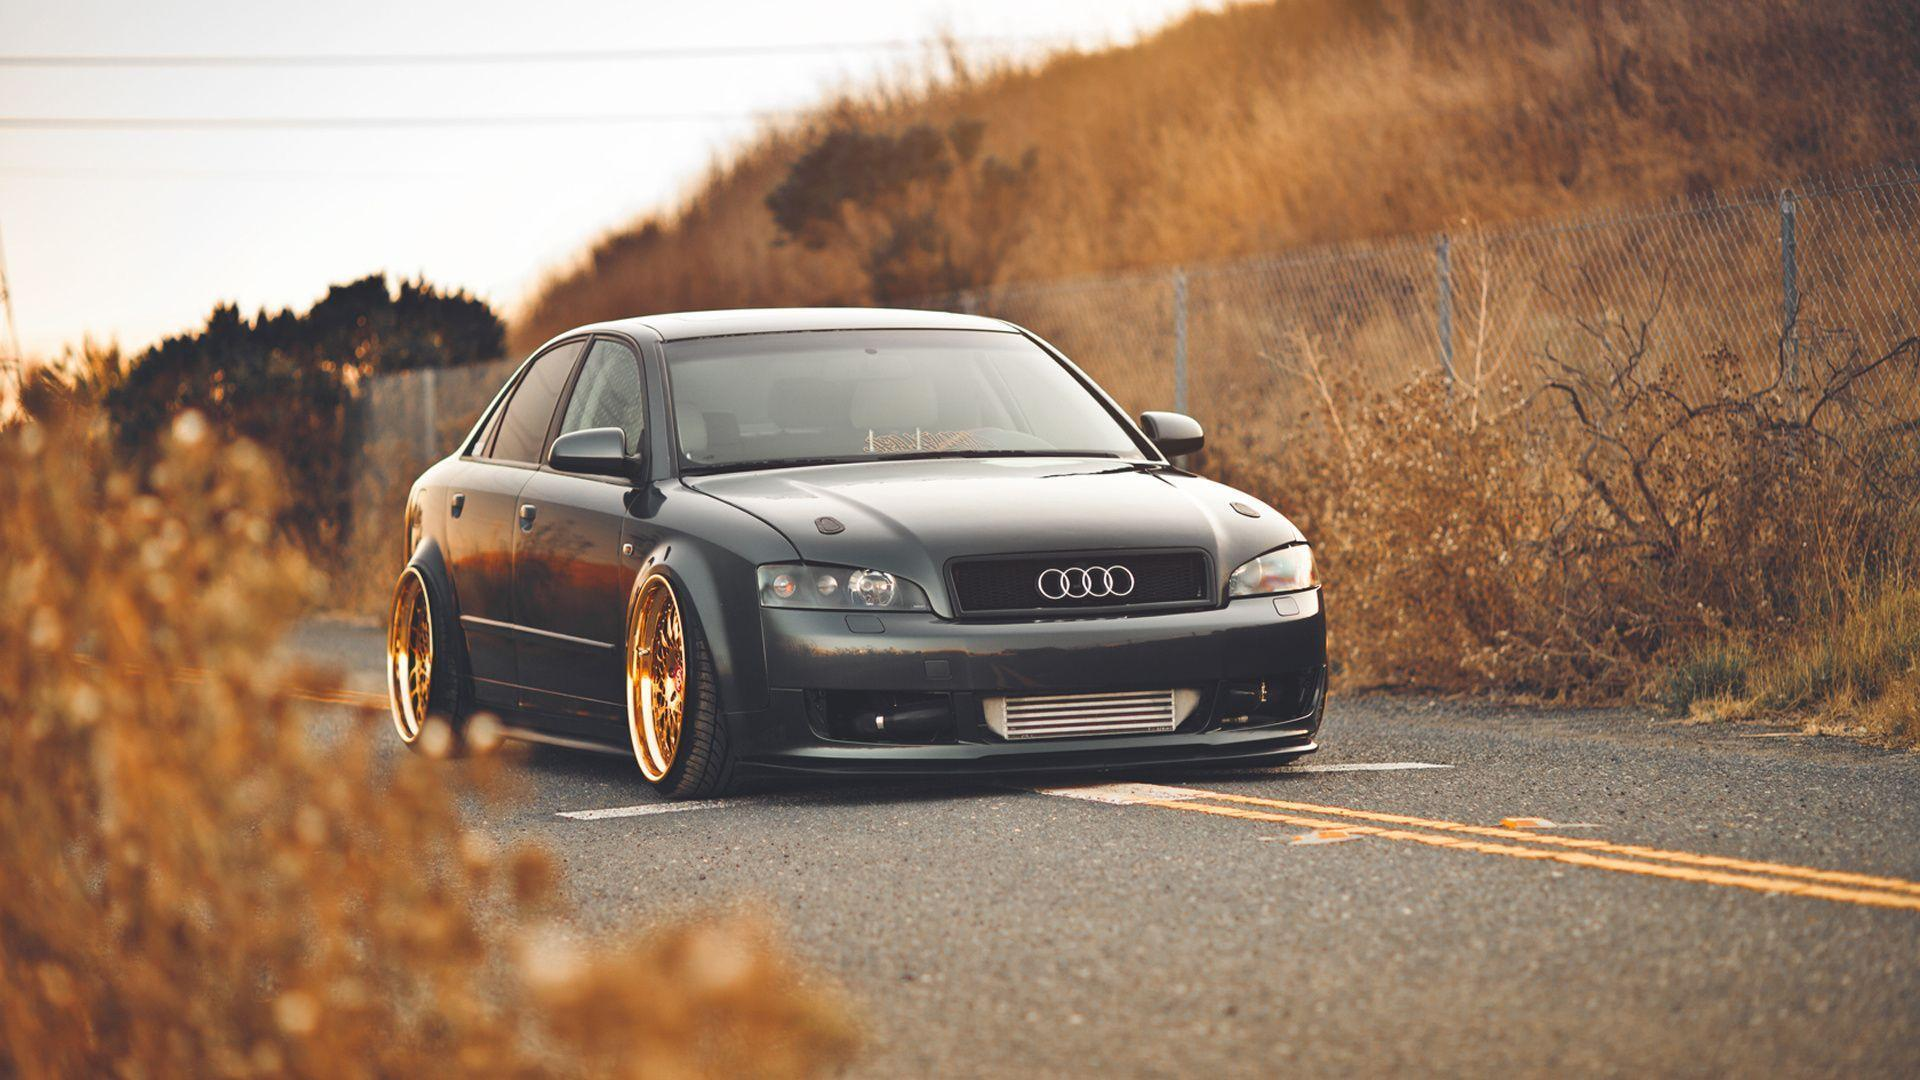 Download Wallpapers 1920x1080 Audi, A4, Audi, Autumn, Gold Full HD